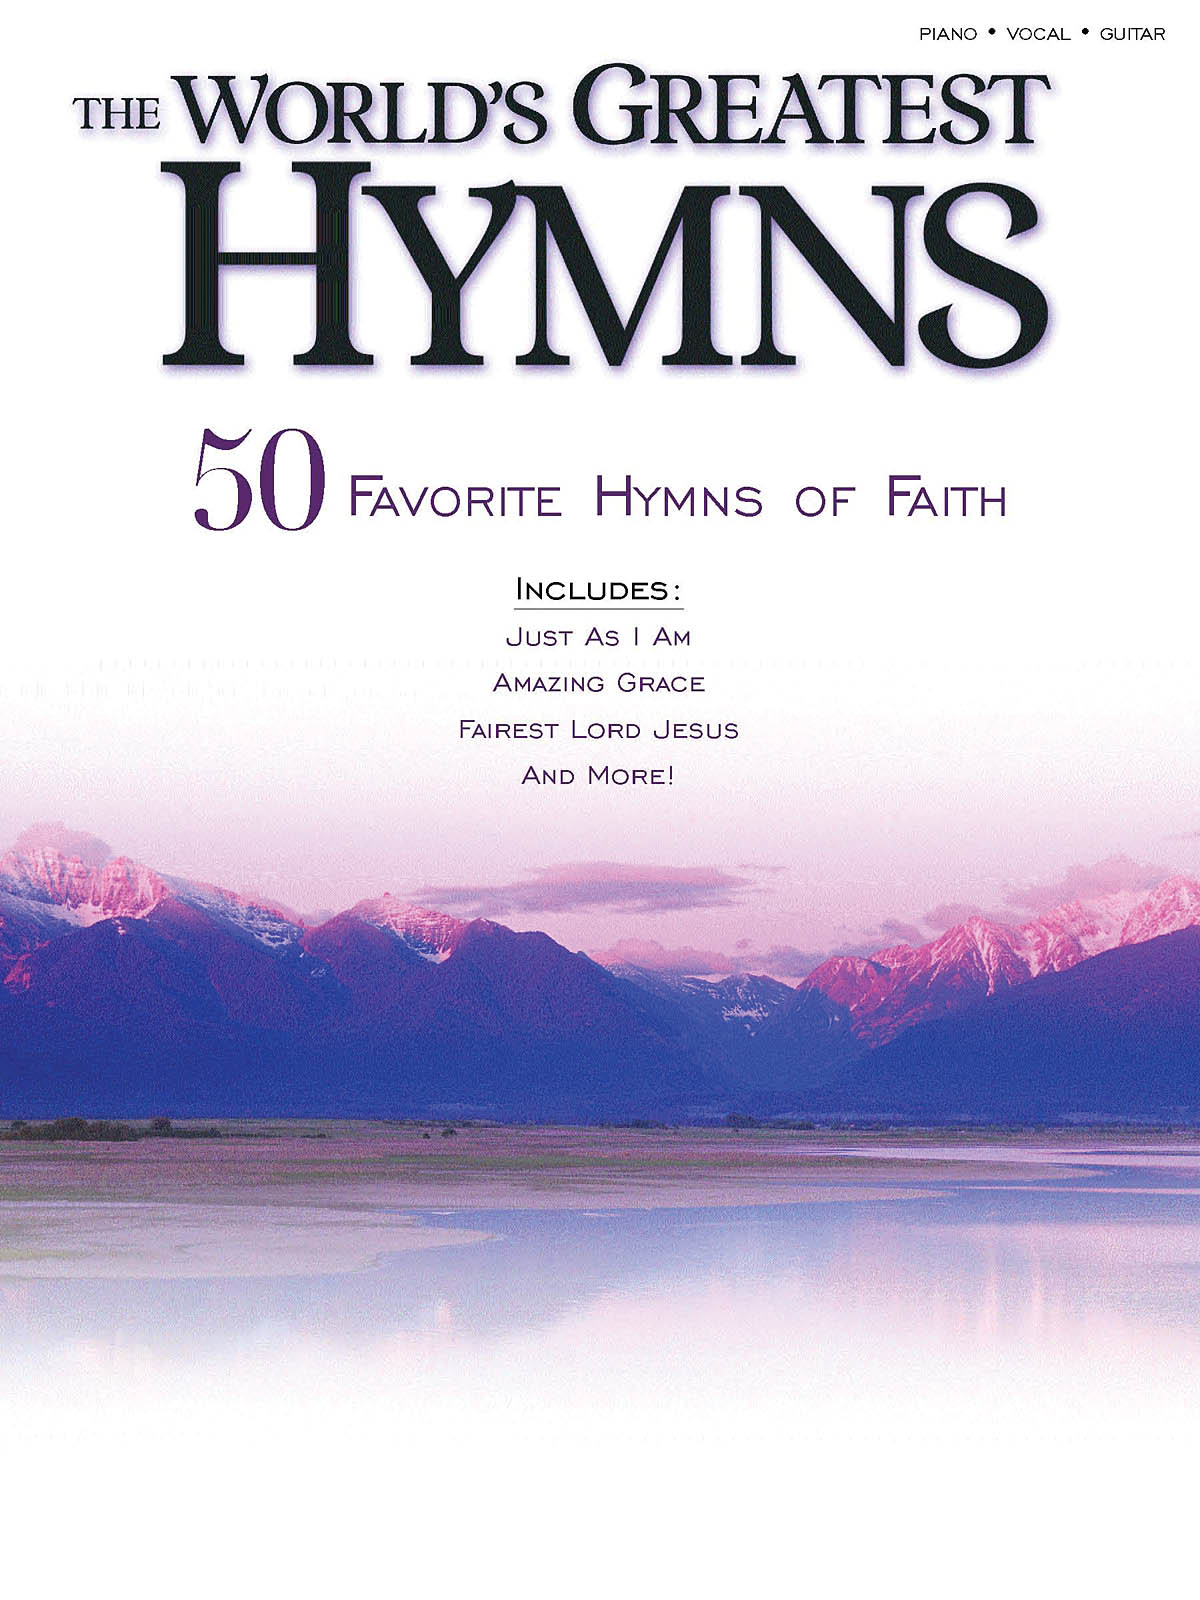 World's Greatest Hymns: Piano  Vocal  Guitar: Mixed Songbook